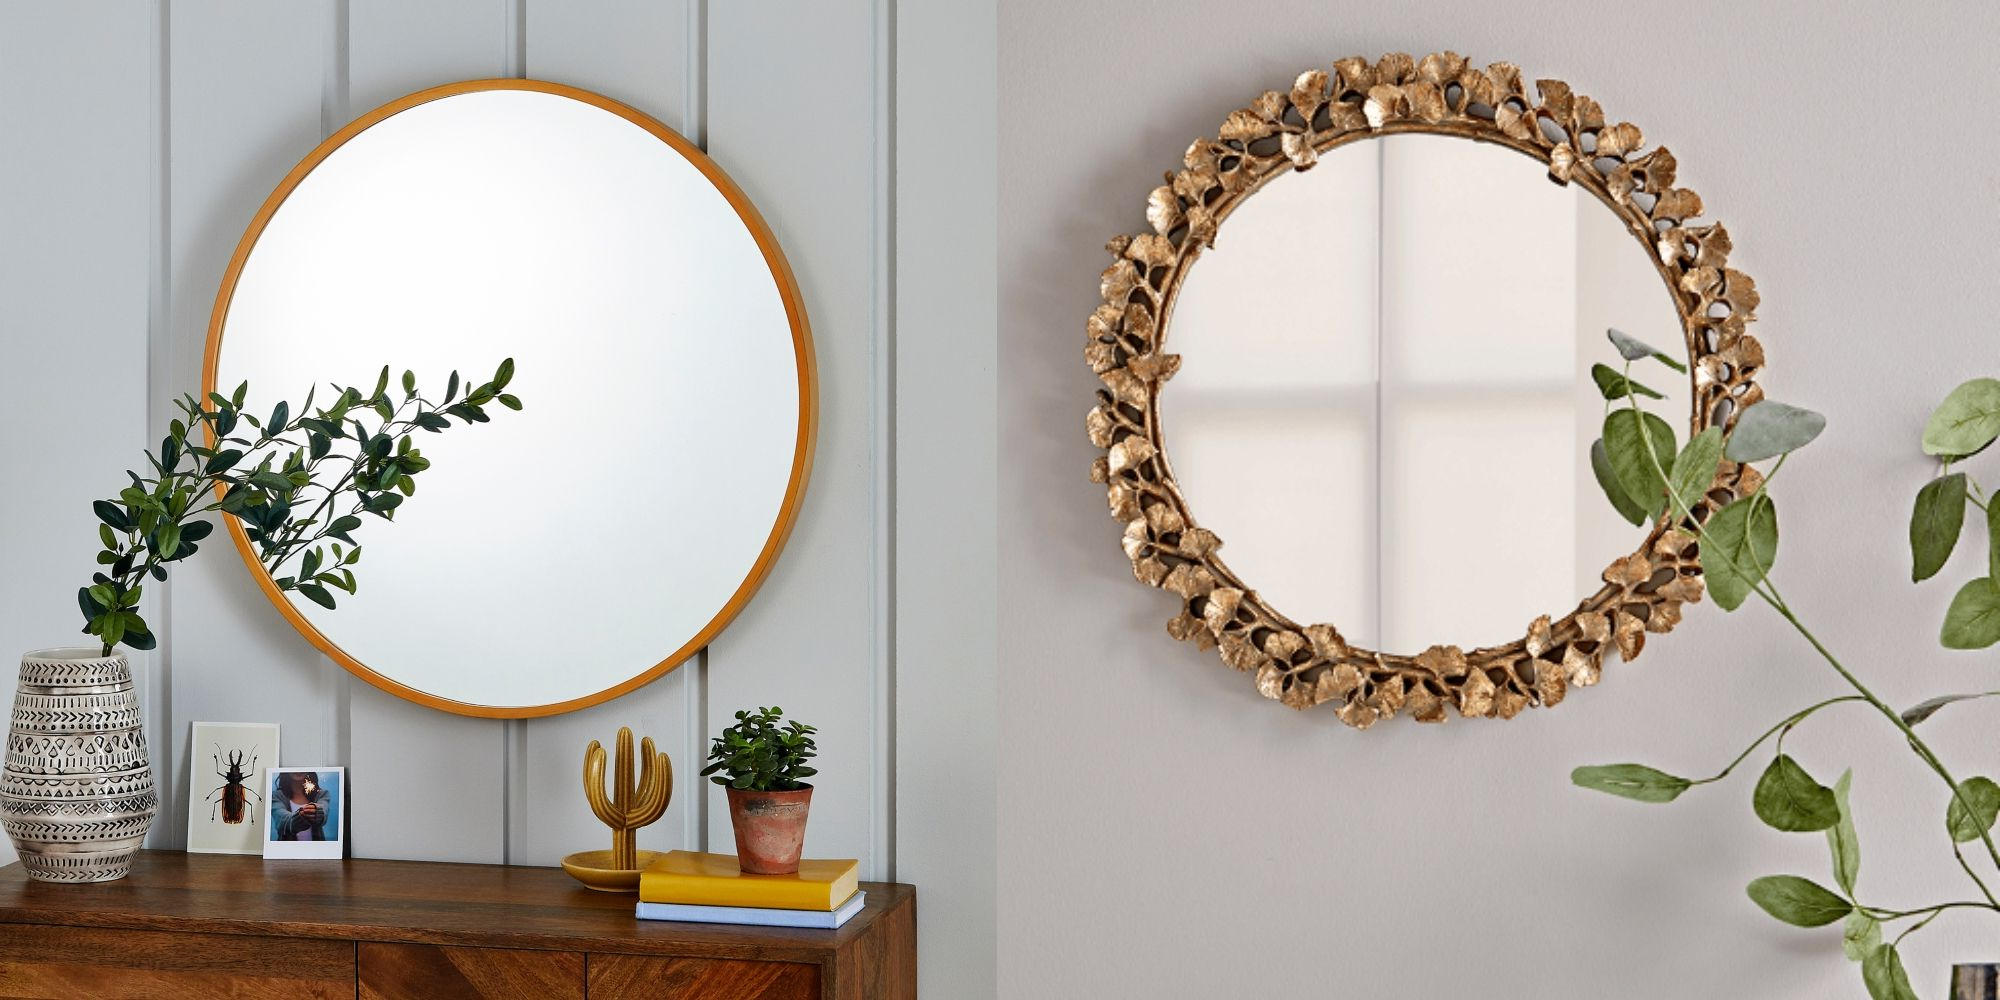 Current 7 Statement Round Wall Mirrors To Buy For Your Home Throughout Wall Mirrors (View 13 of 20)